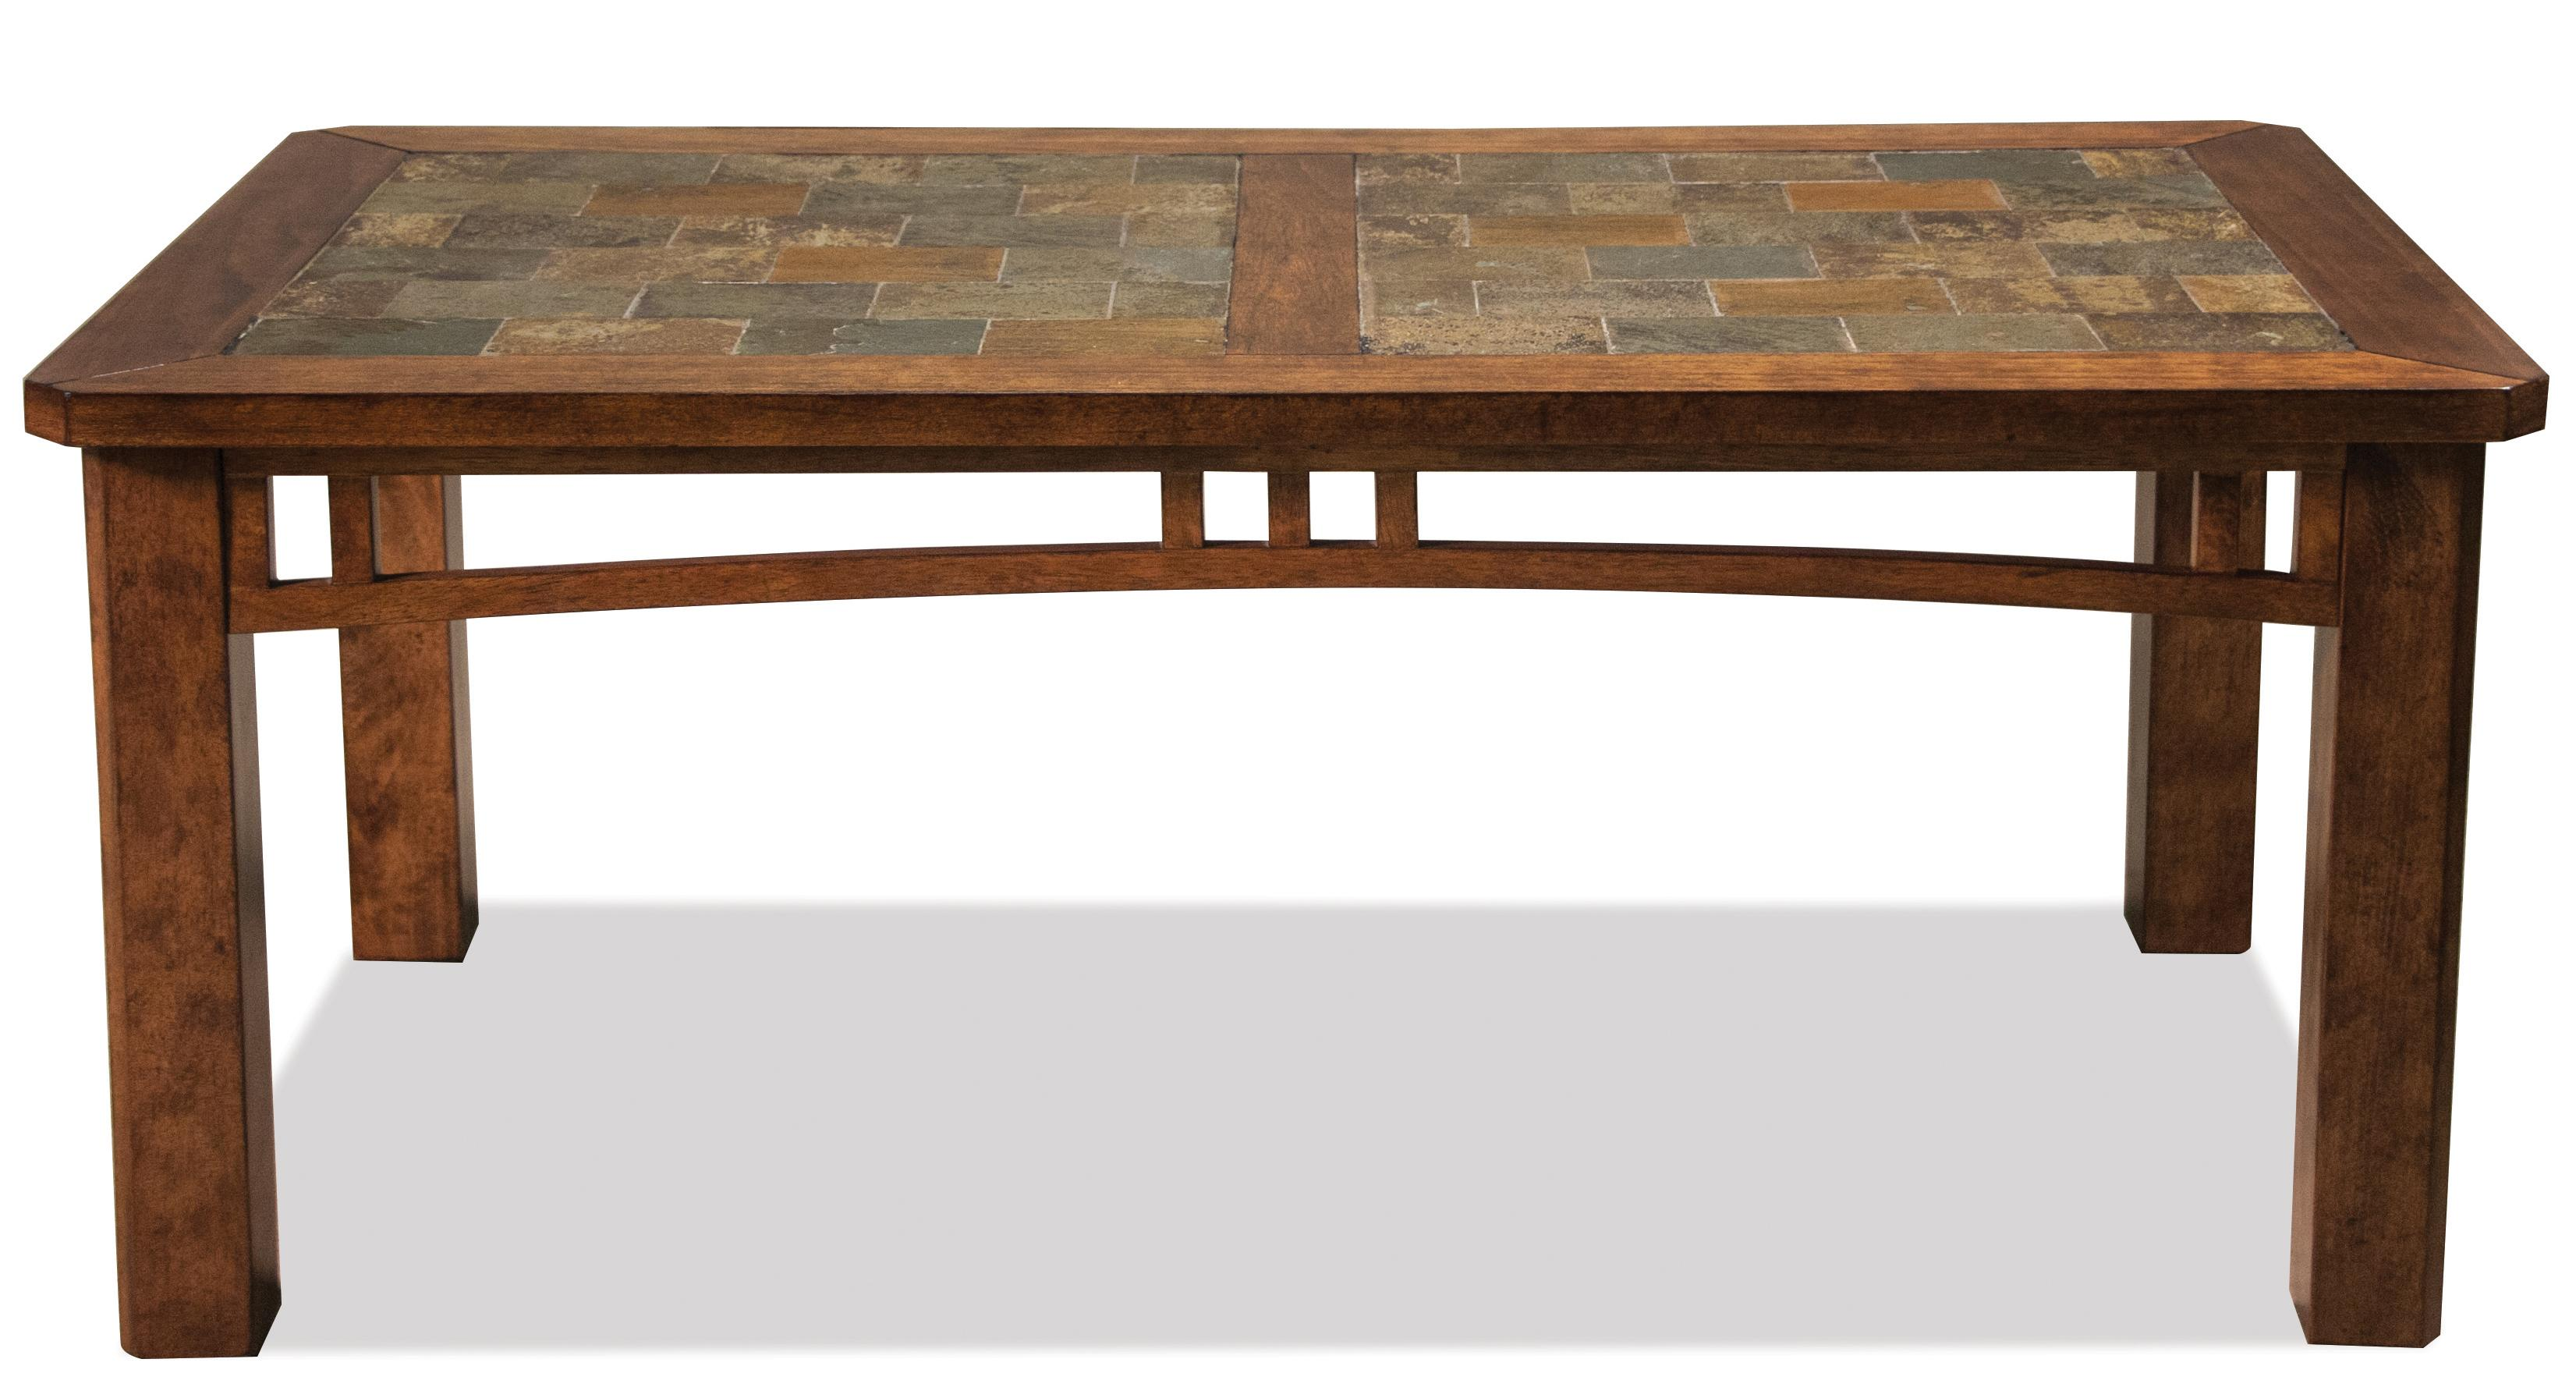 Coffee table w slate top by riverside furniture wolf and coffee table w slate top geotapseo Image collections